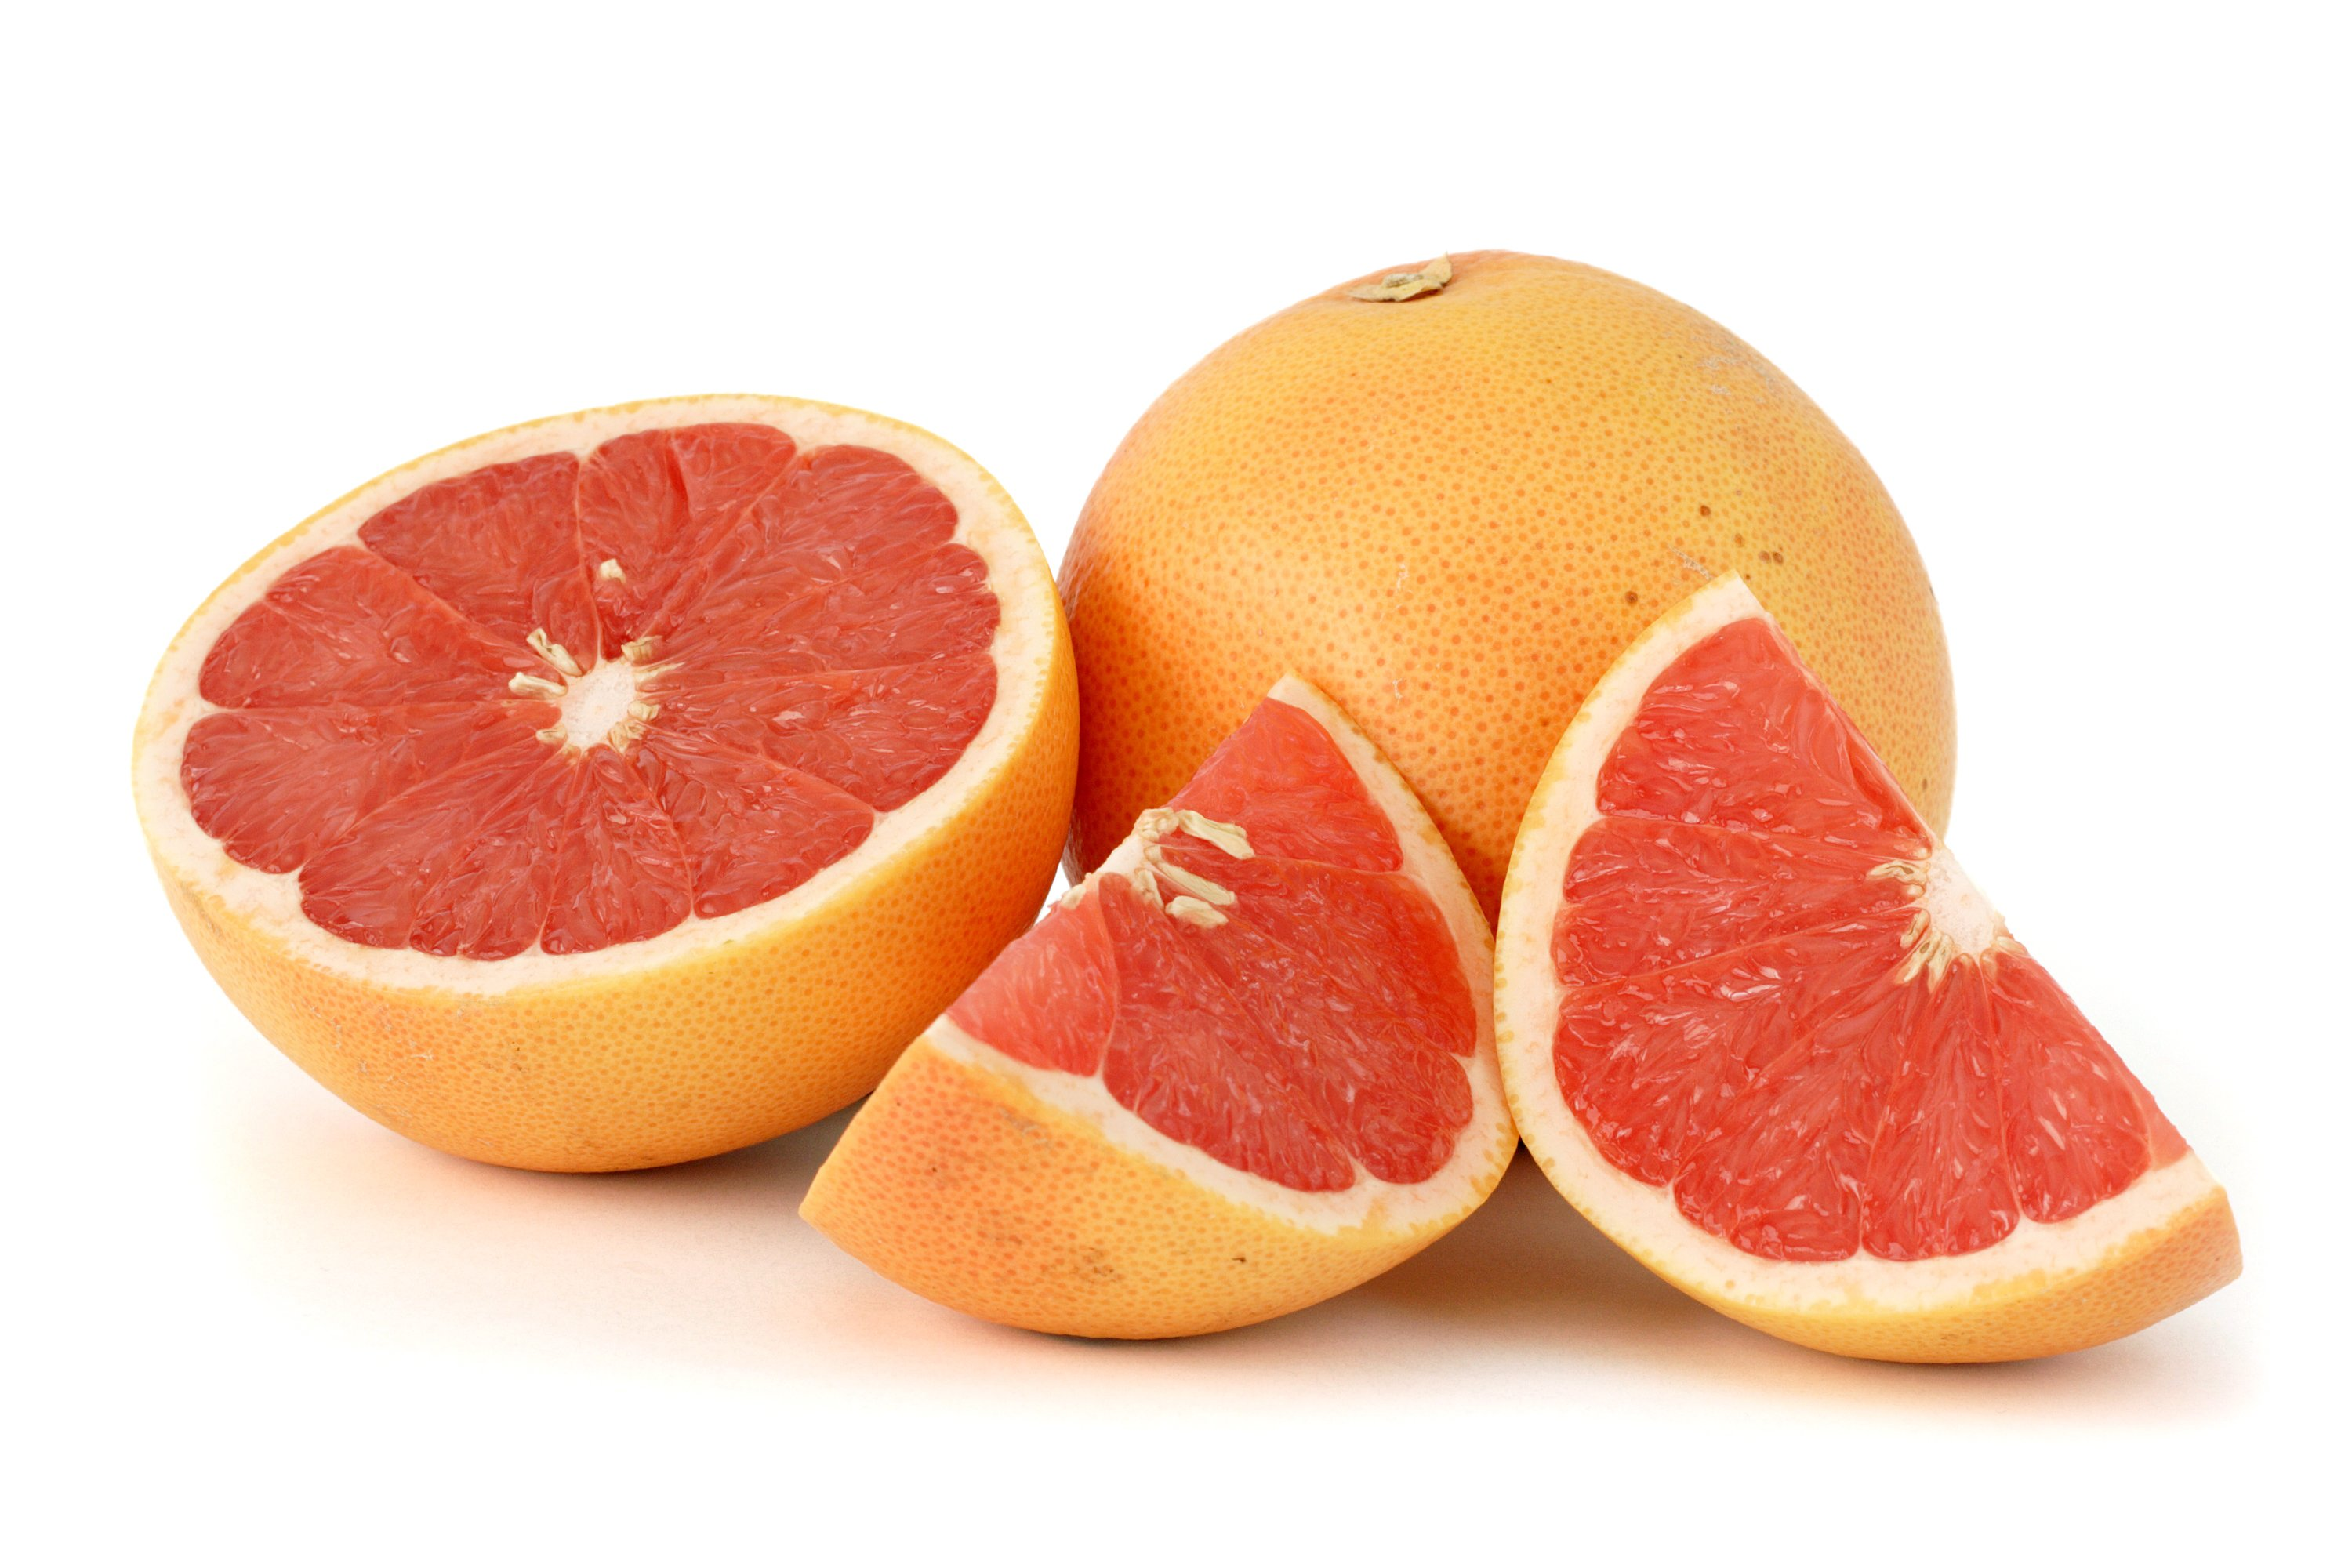 grapefruit-2.jpg